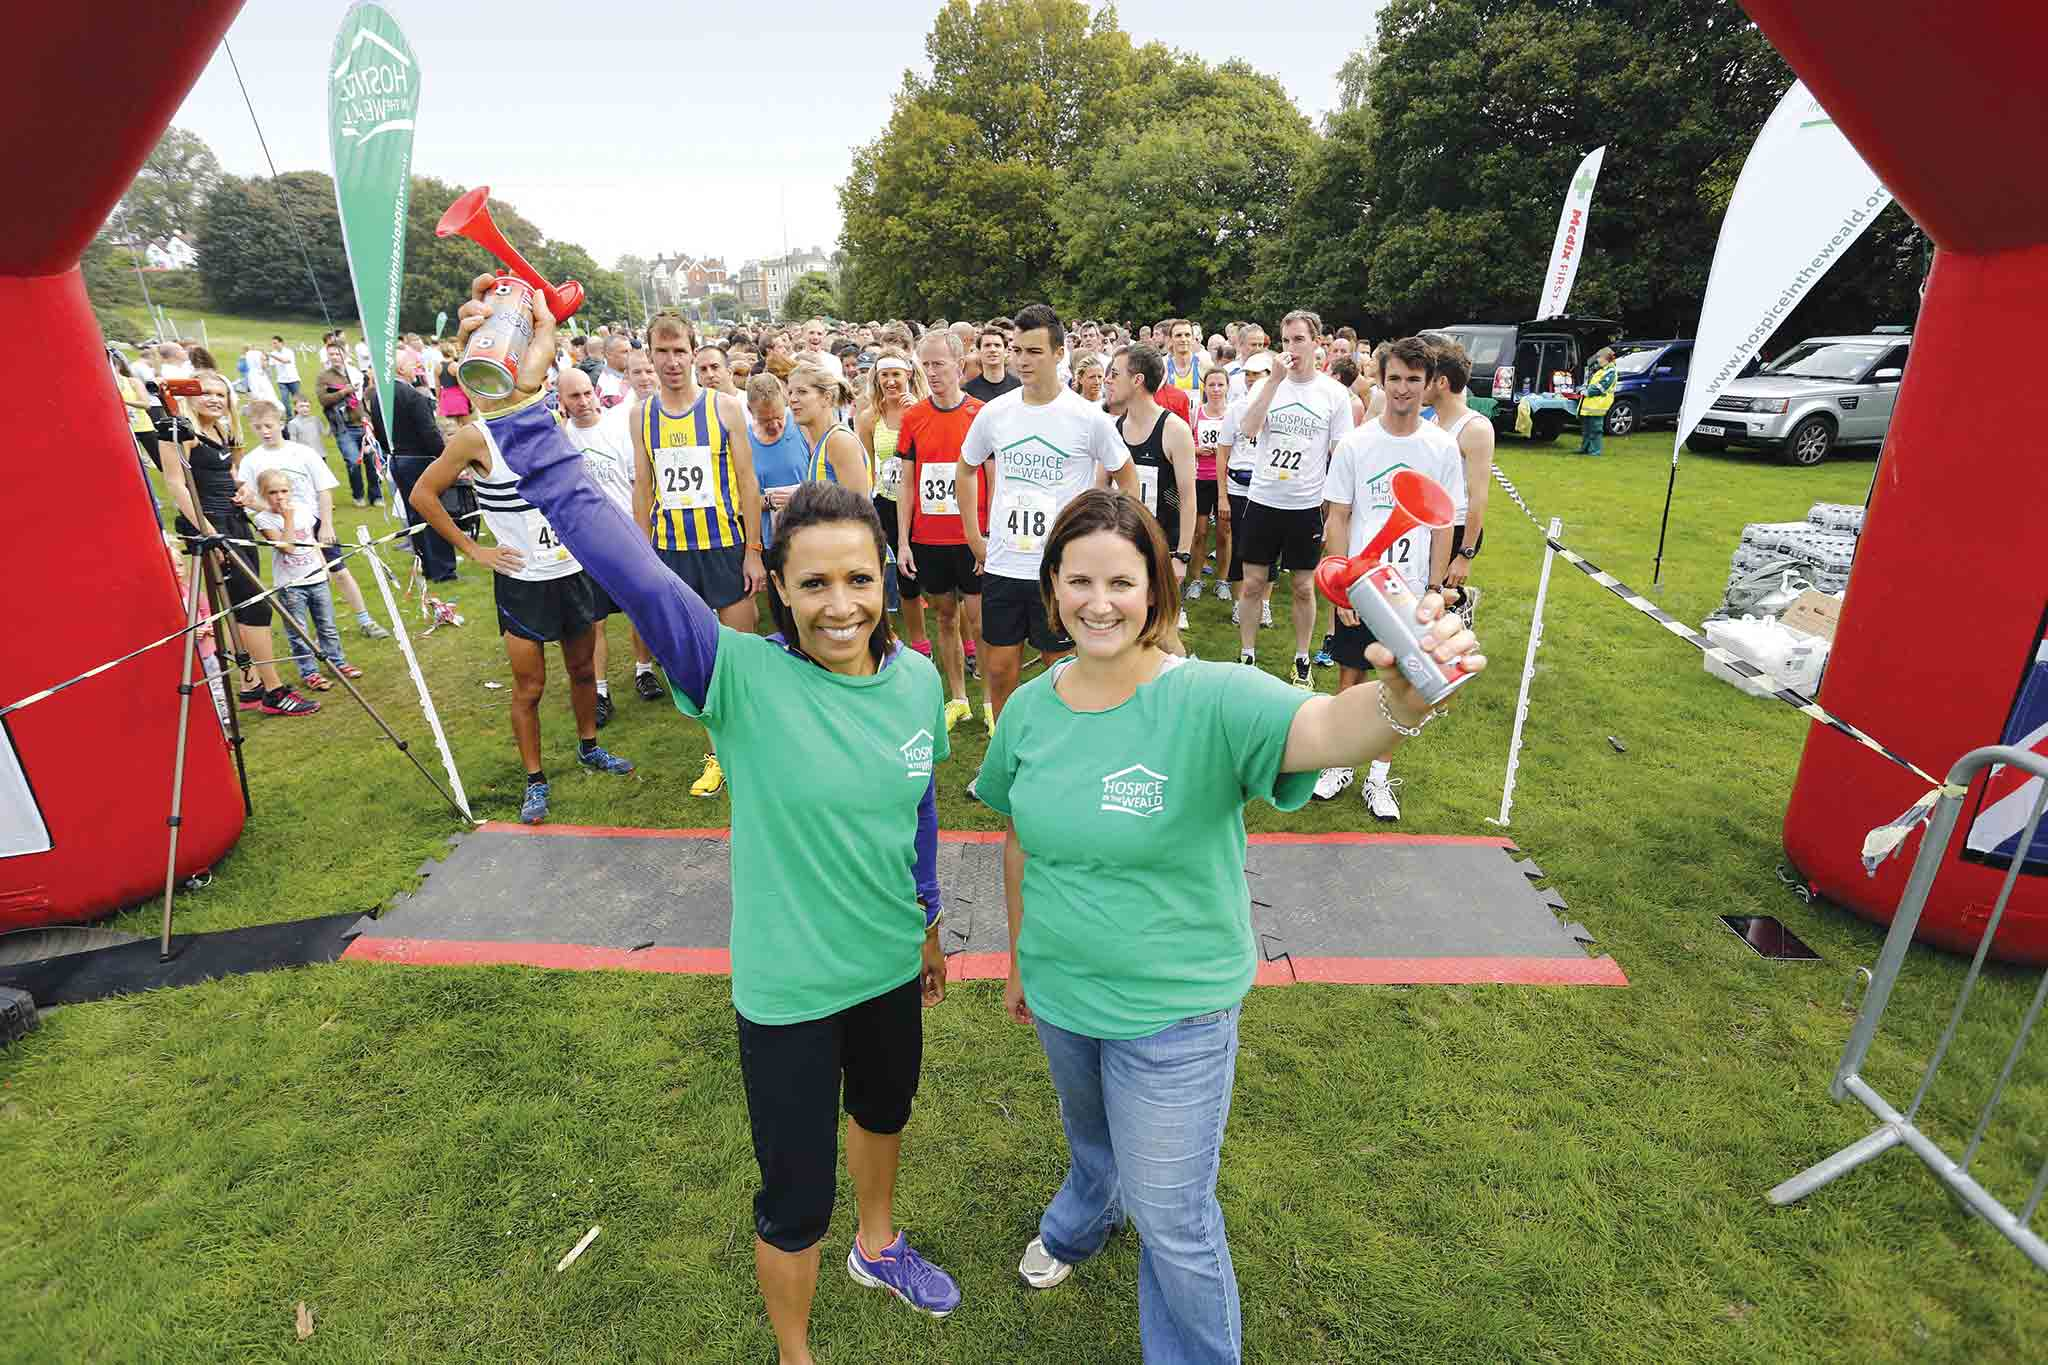 Hospice in the Weald 10k Run